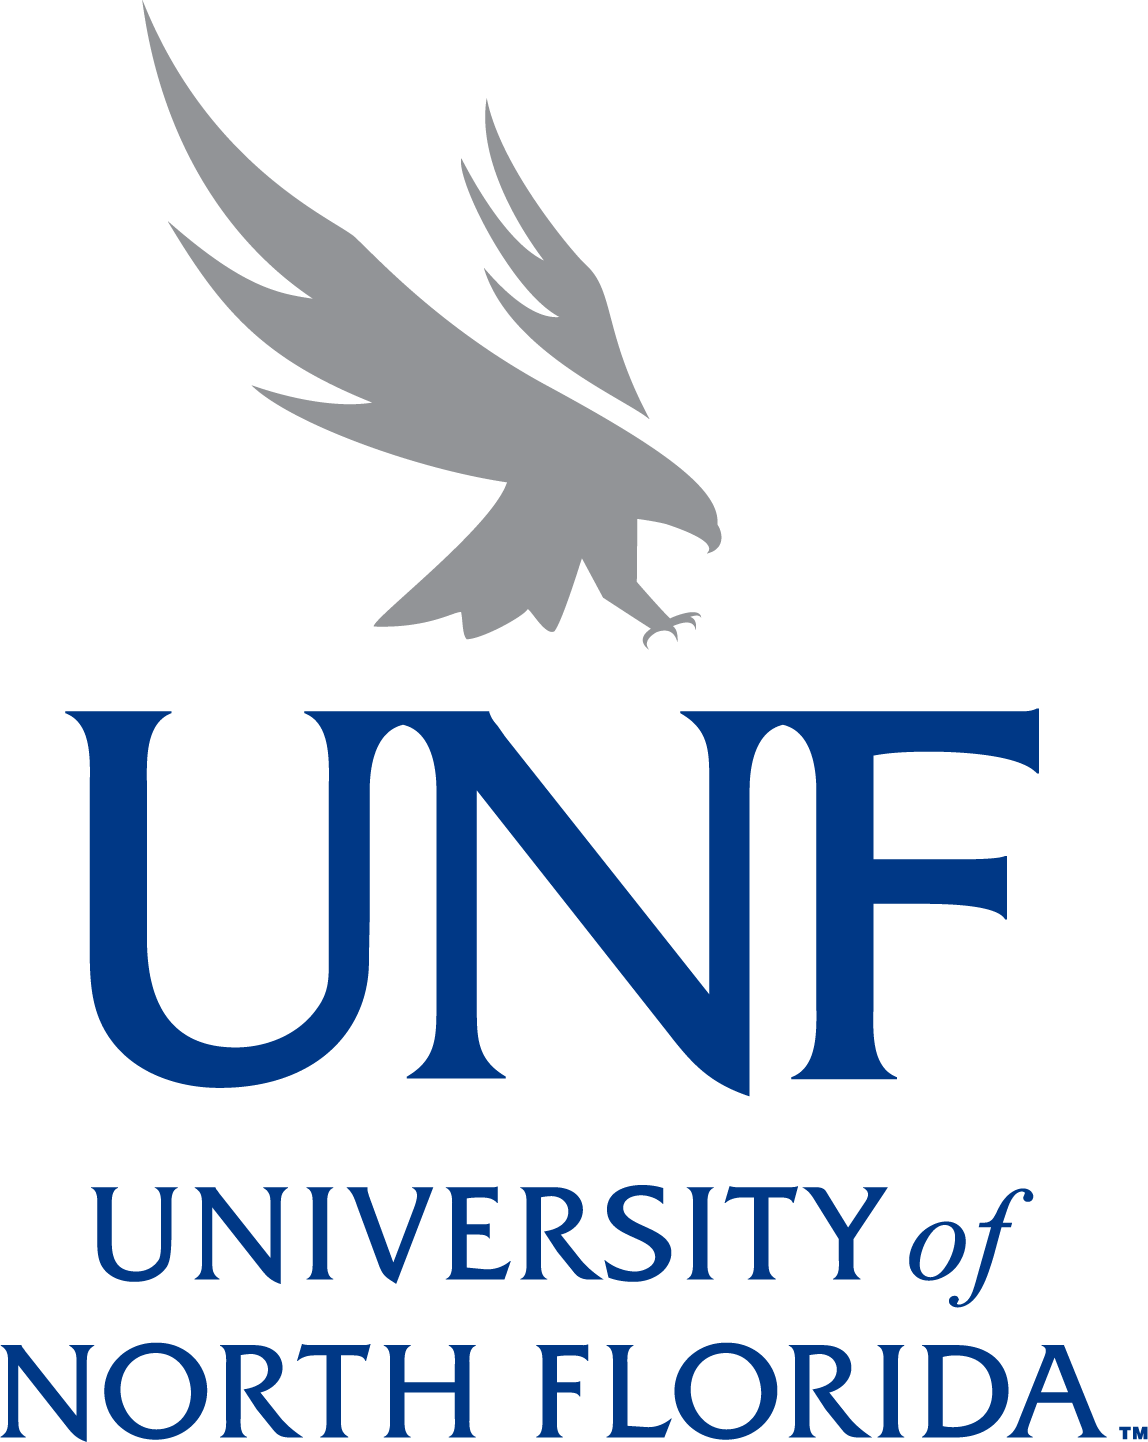 University of North Florida Logo png